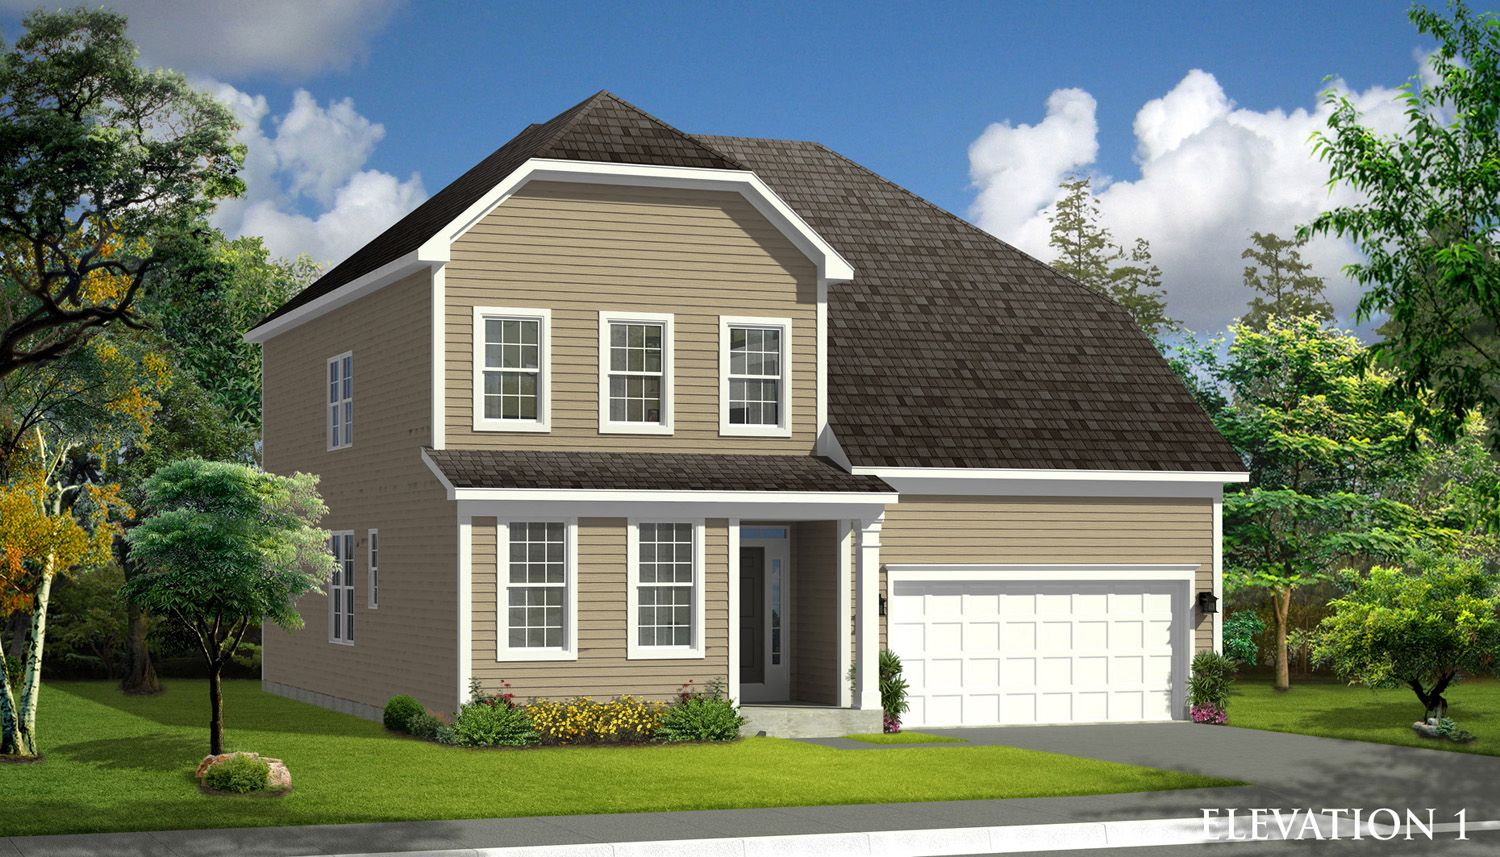 Homes For Sale Near Sharpsburg Pike Hagerstown Md